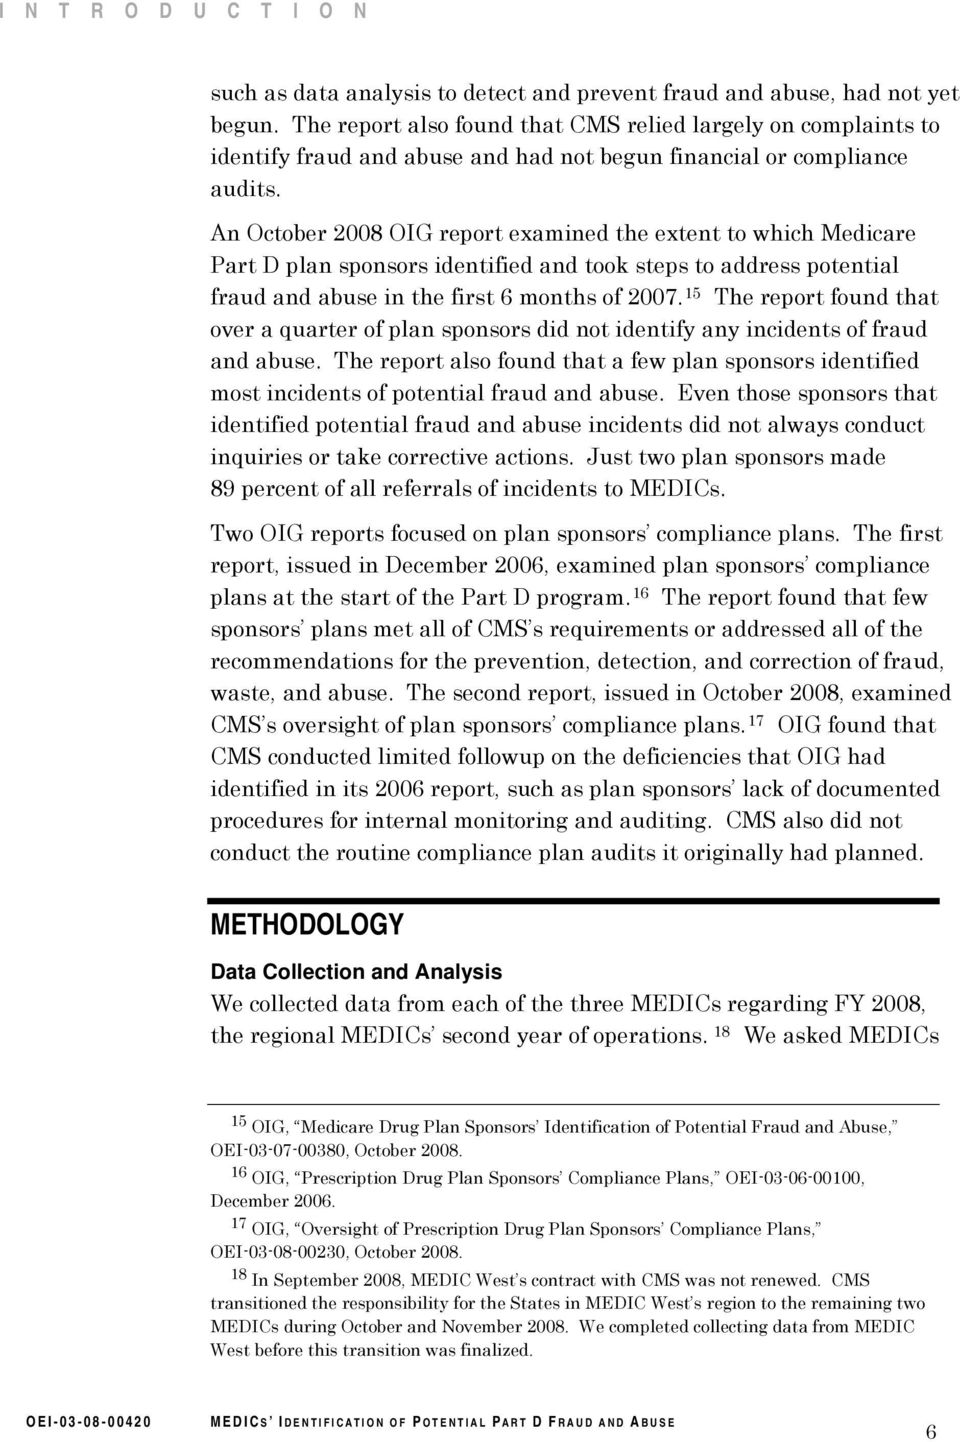 An October 2008 OIG report examined the extent to which Medicare Part D plan sponsors identified and took steps to address potential fraud and abuse in the first 6 months of 2007.